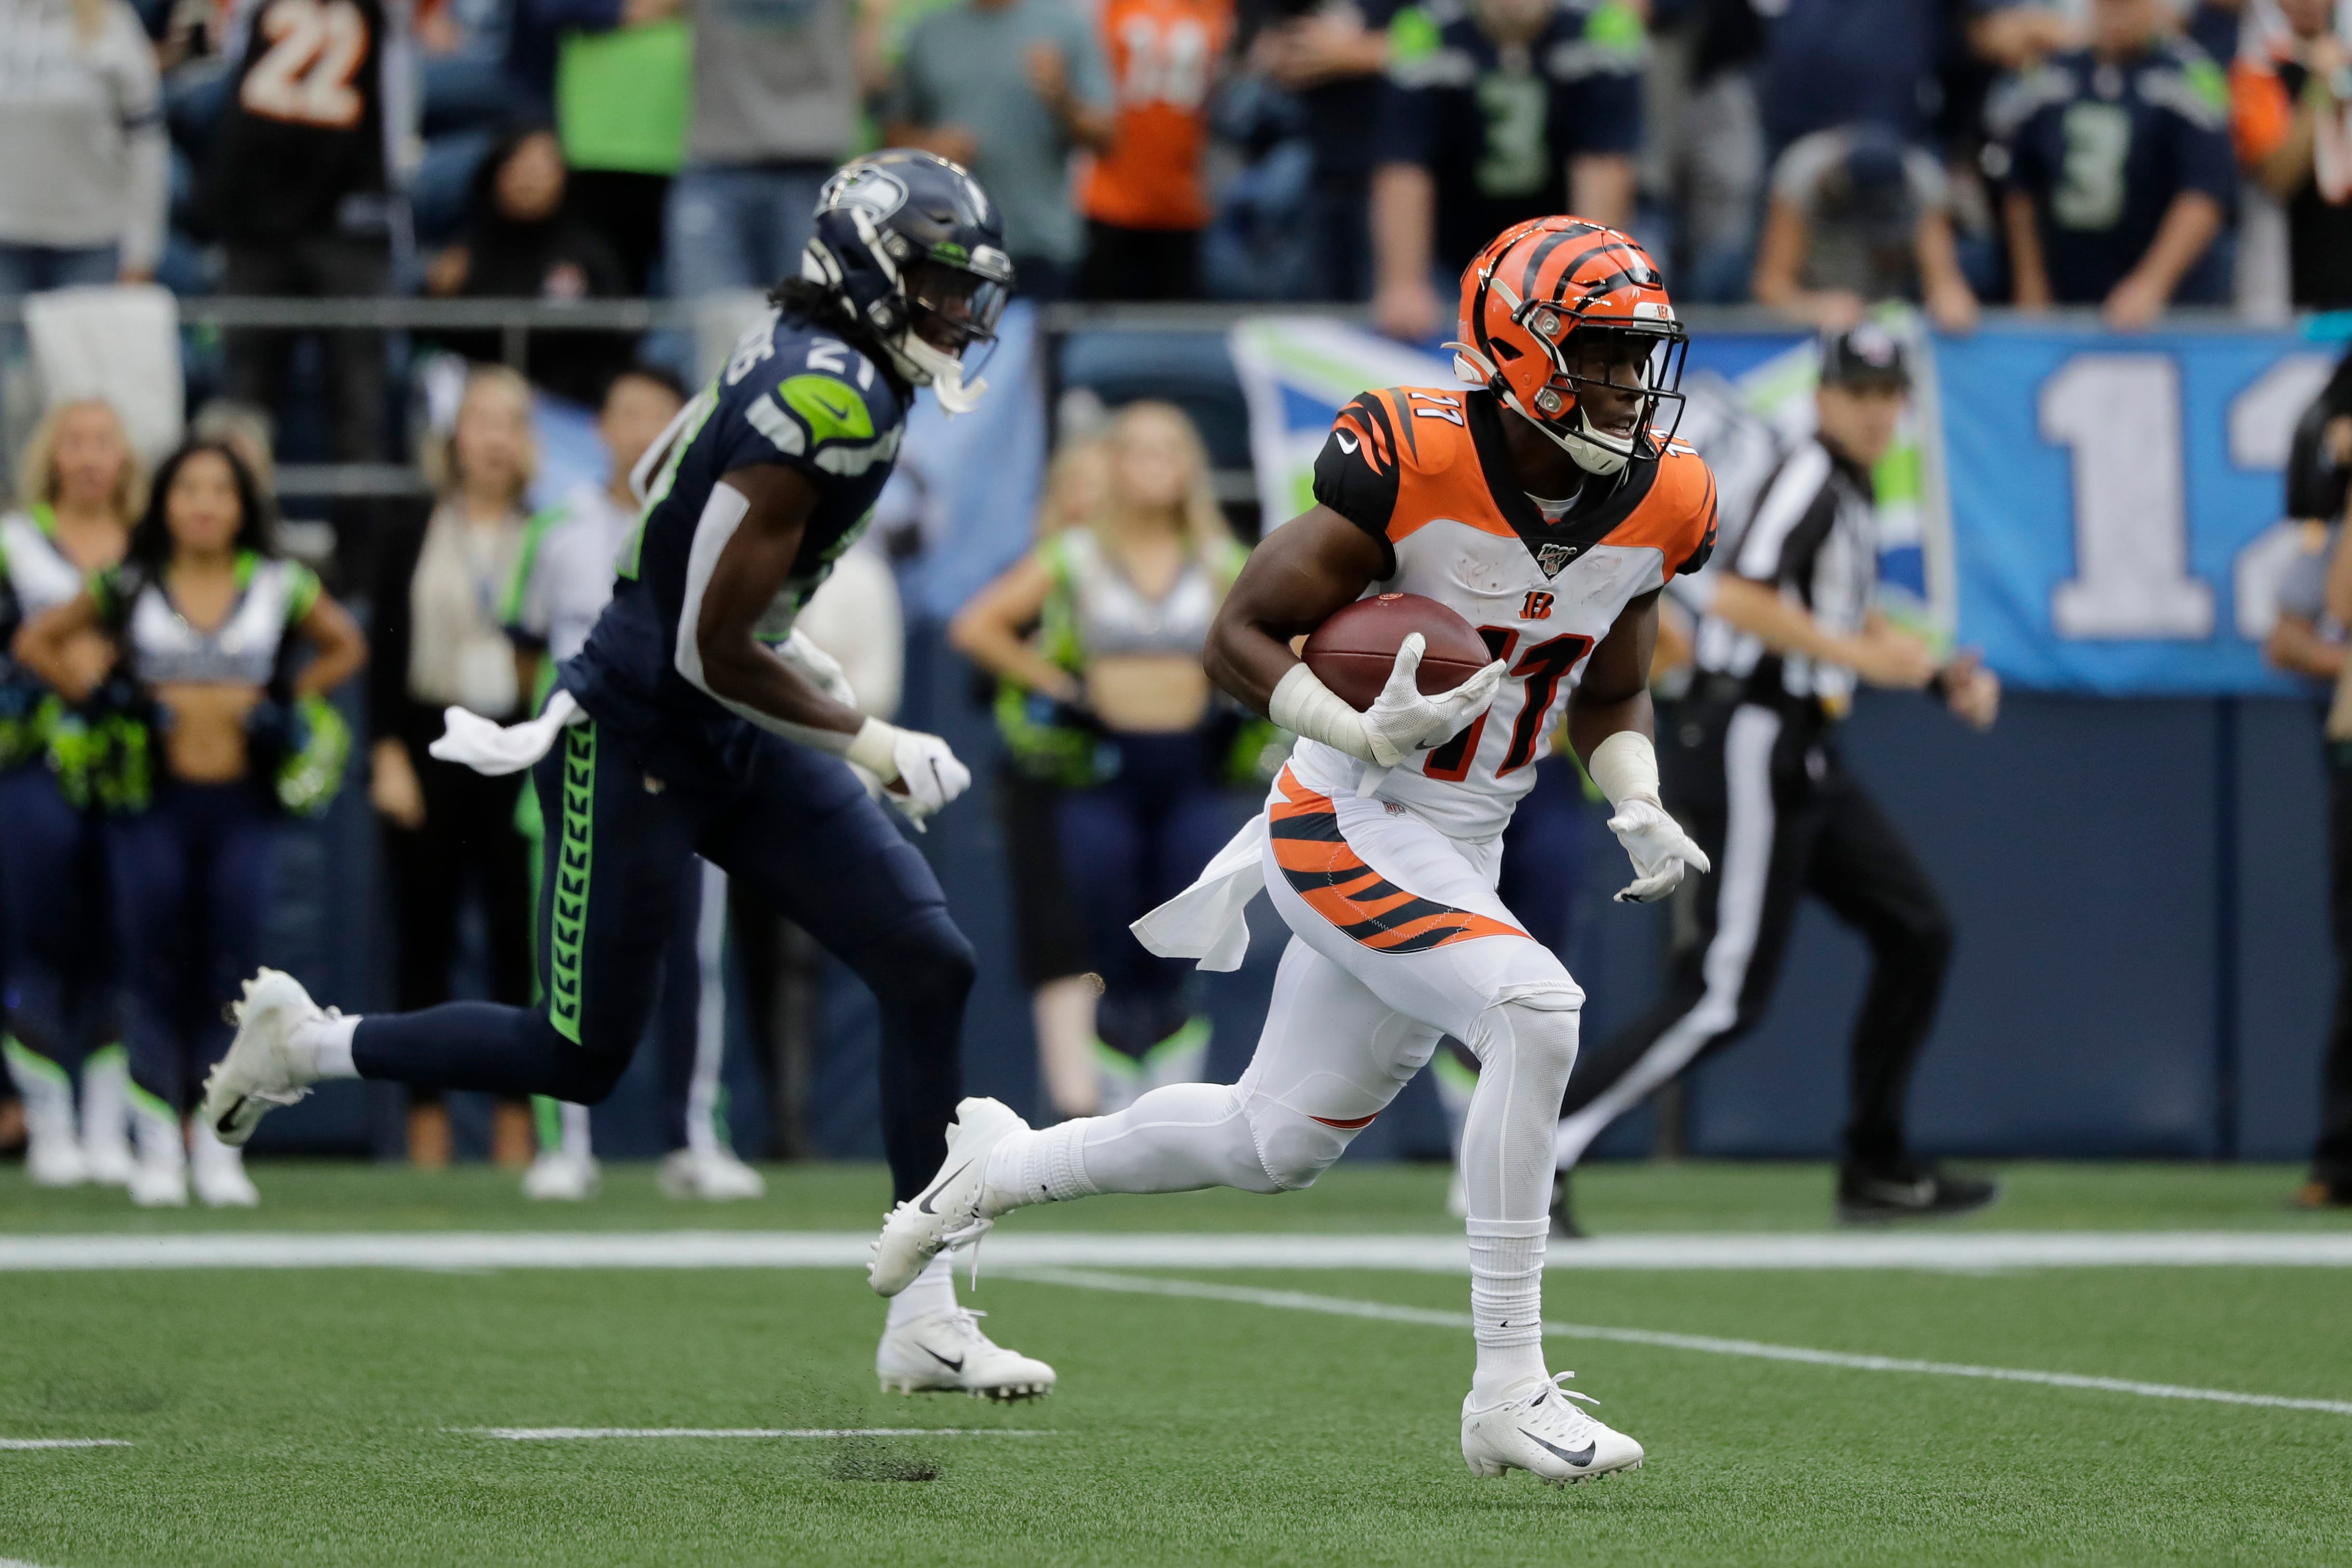 Career day by Dalton not enough as Bengals fall to Seahawks thumbnail